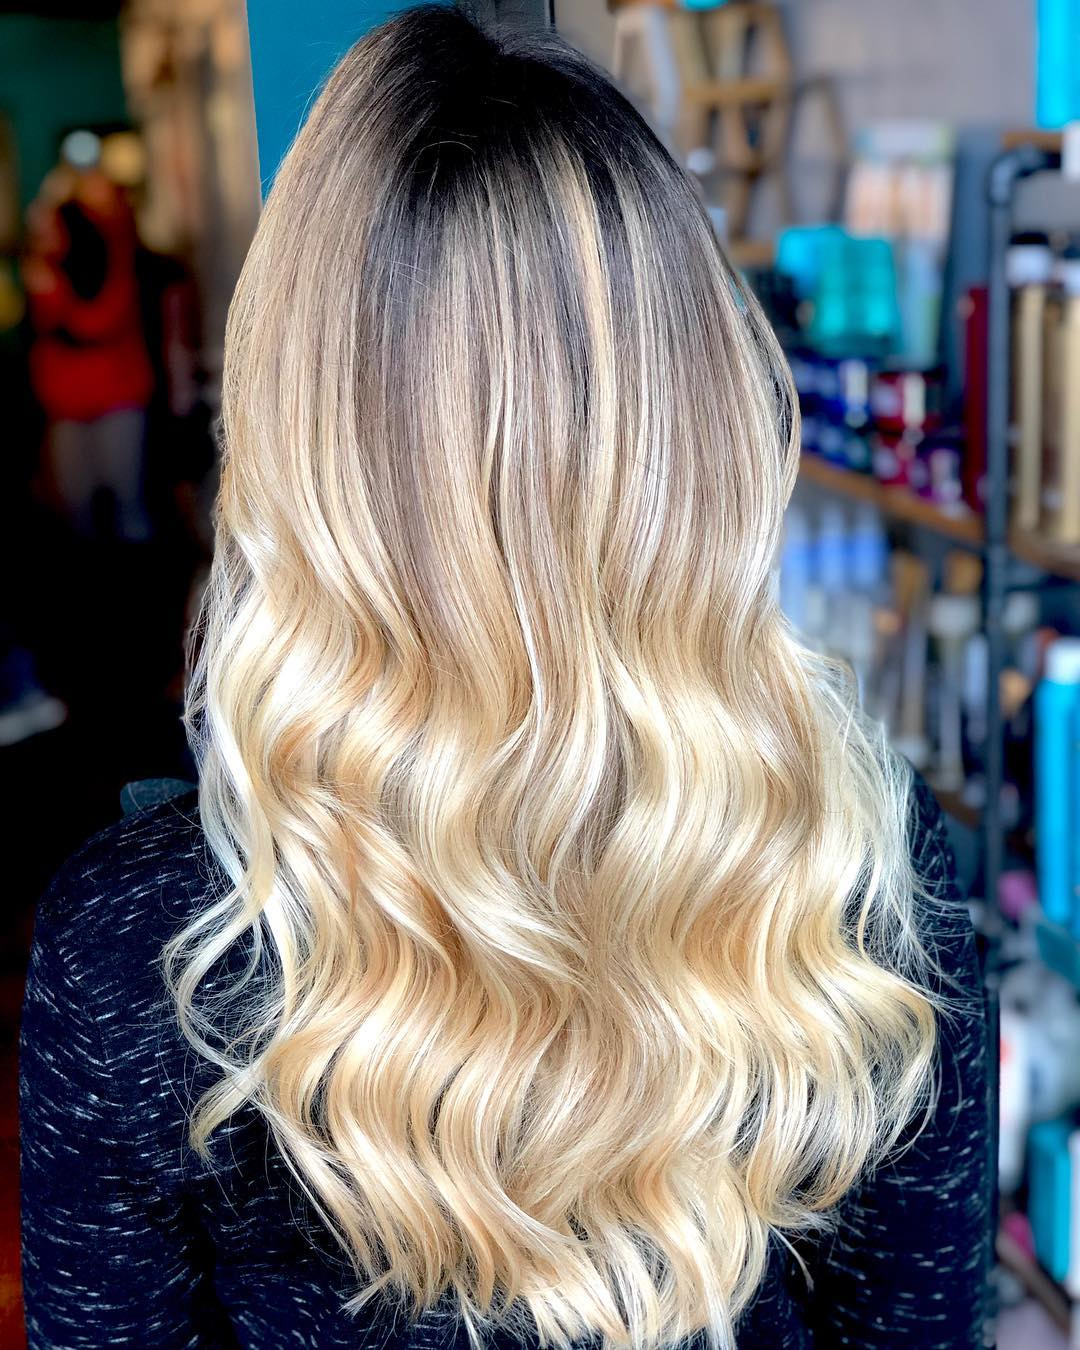 9 New Blonde Balayage Hairstyles You'll Love! – Her Style Code With Regard To Ash Blonde Balayage Ombre On Dark Hairstyles (View 3 of 20)